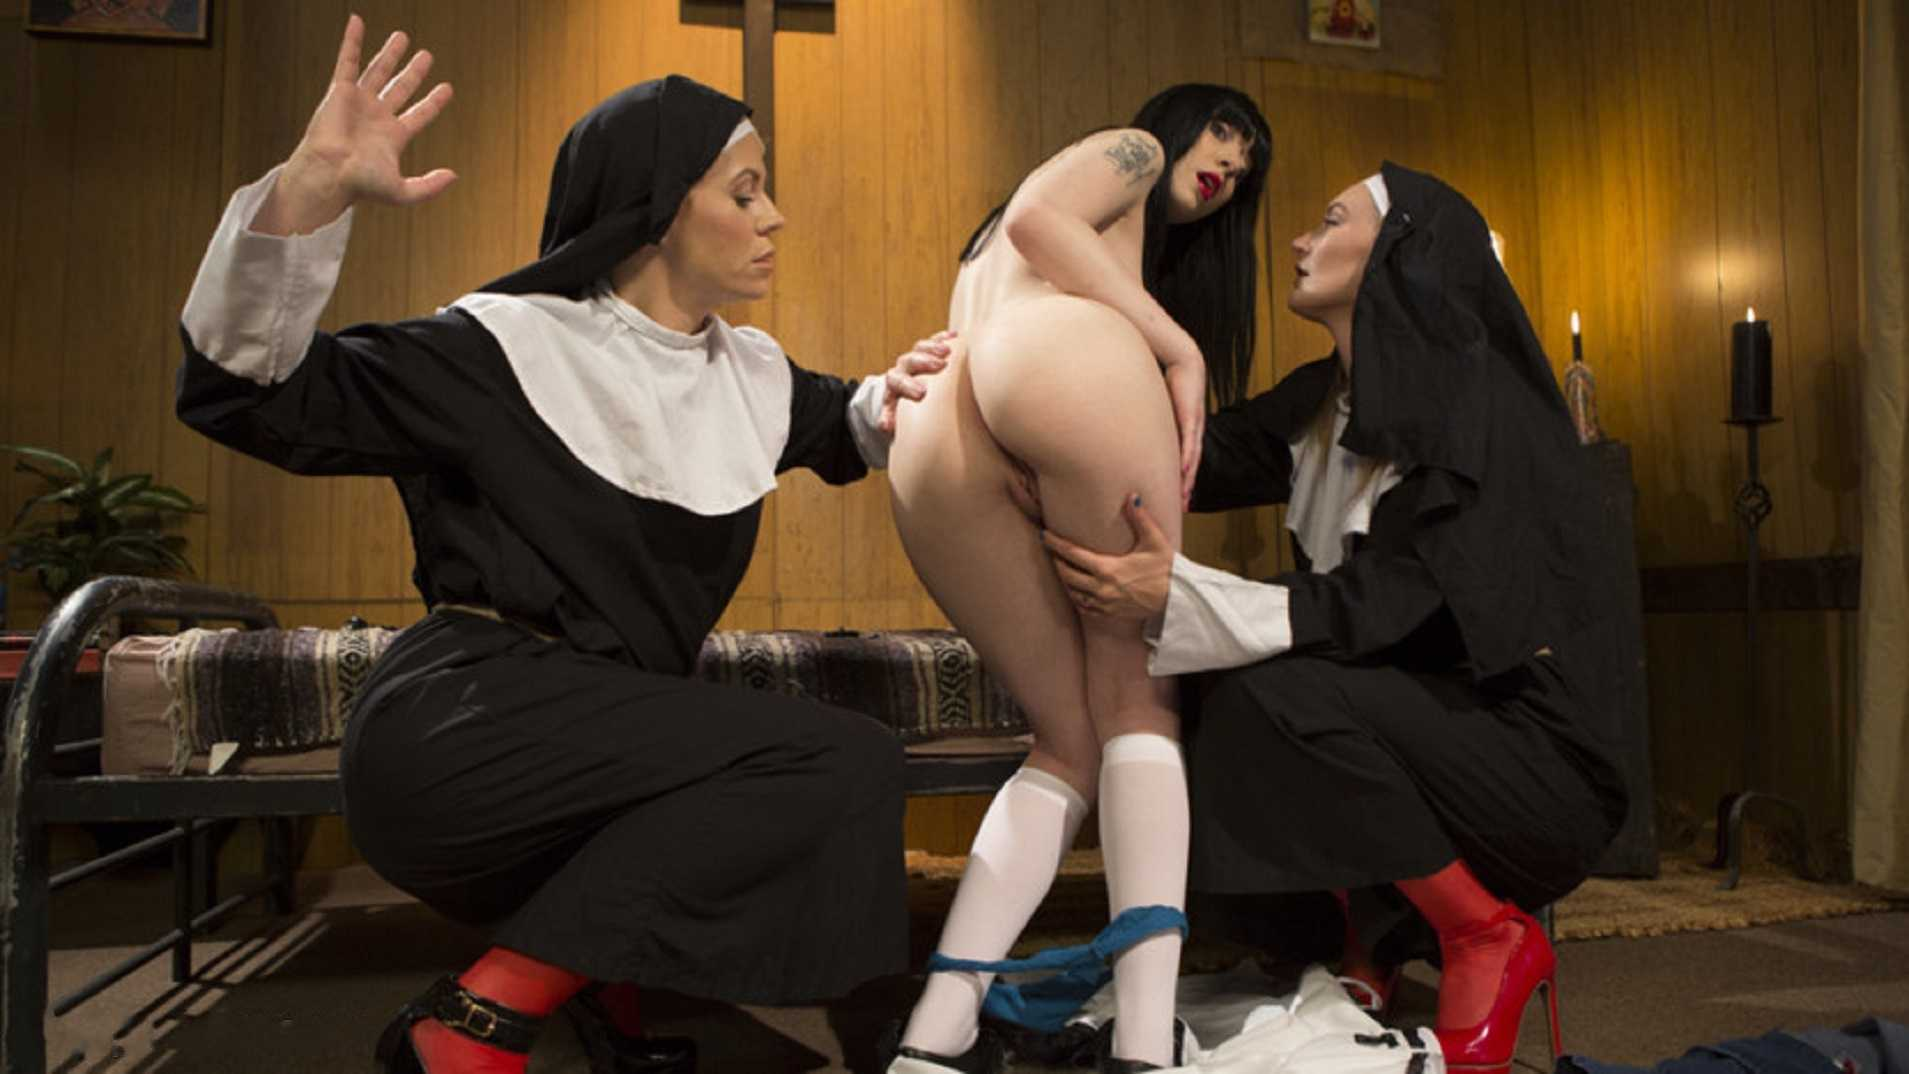 Anal Initiation: Aspiring Nun Gets Beaten & Fucked | HD 720p | May 11, 2017